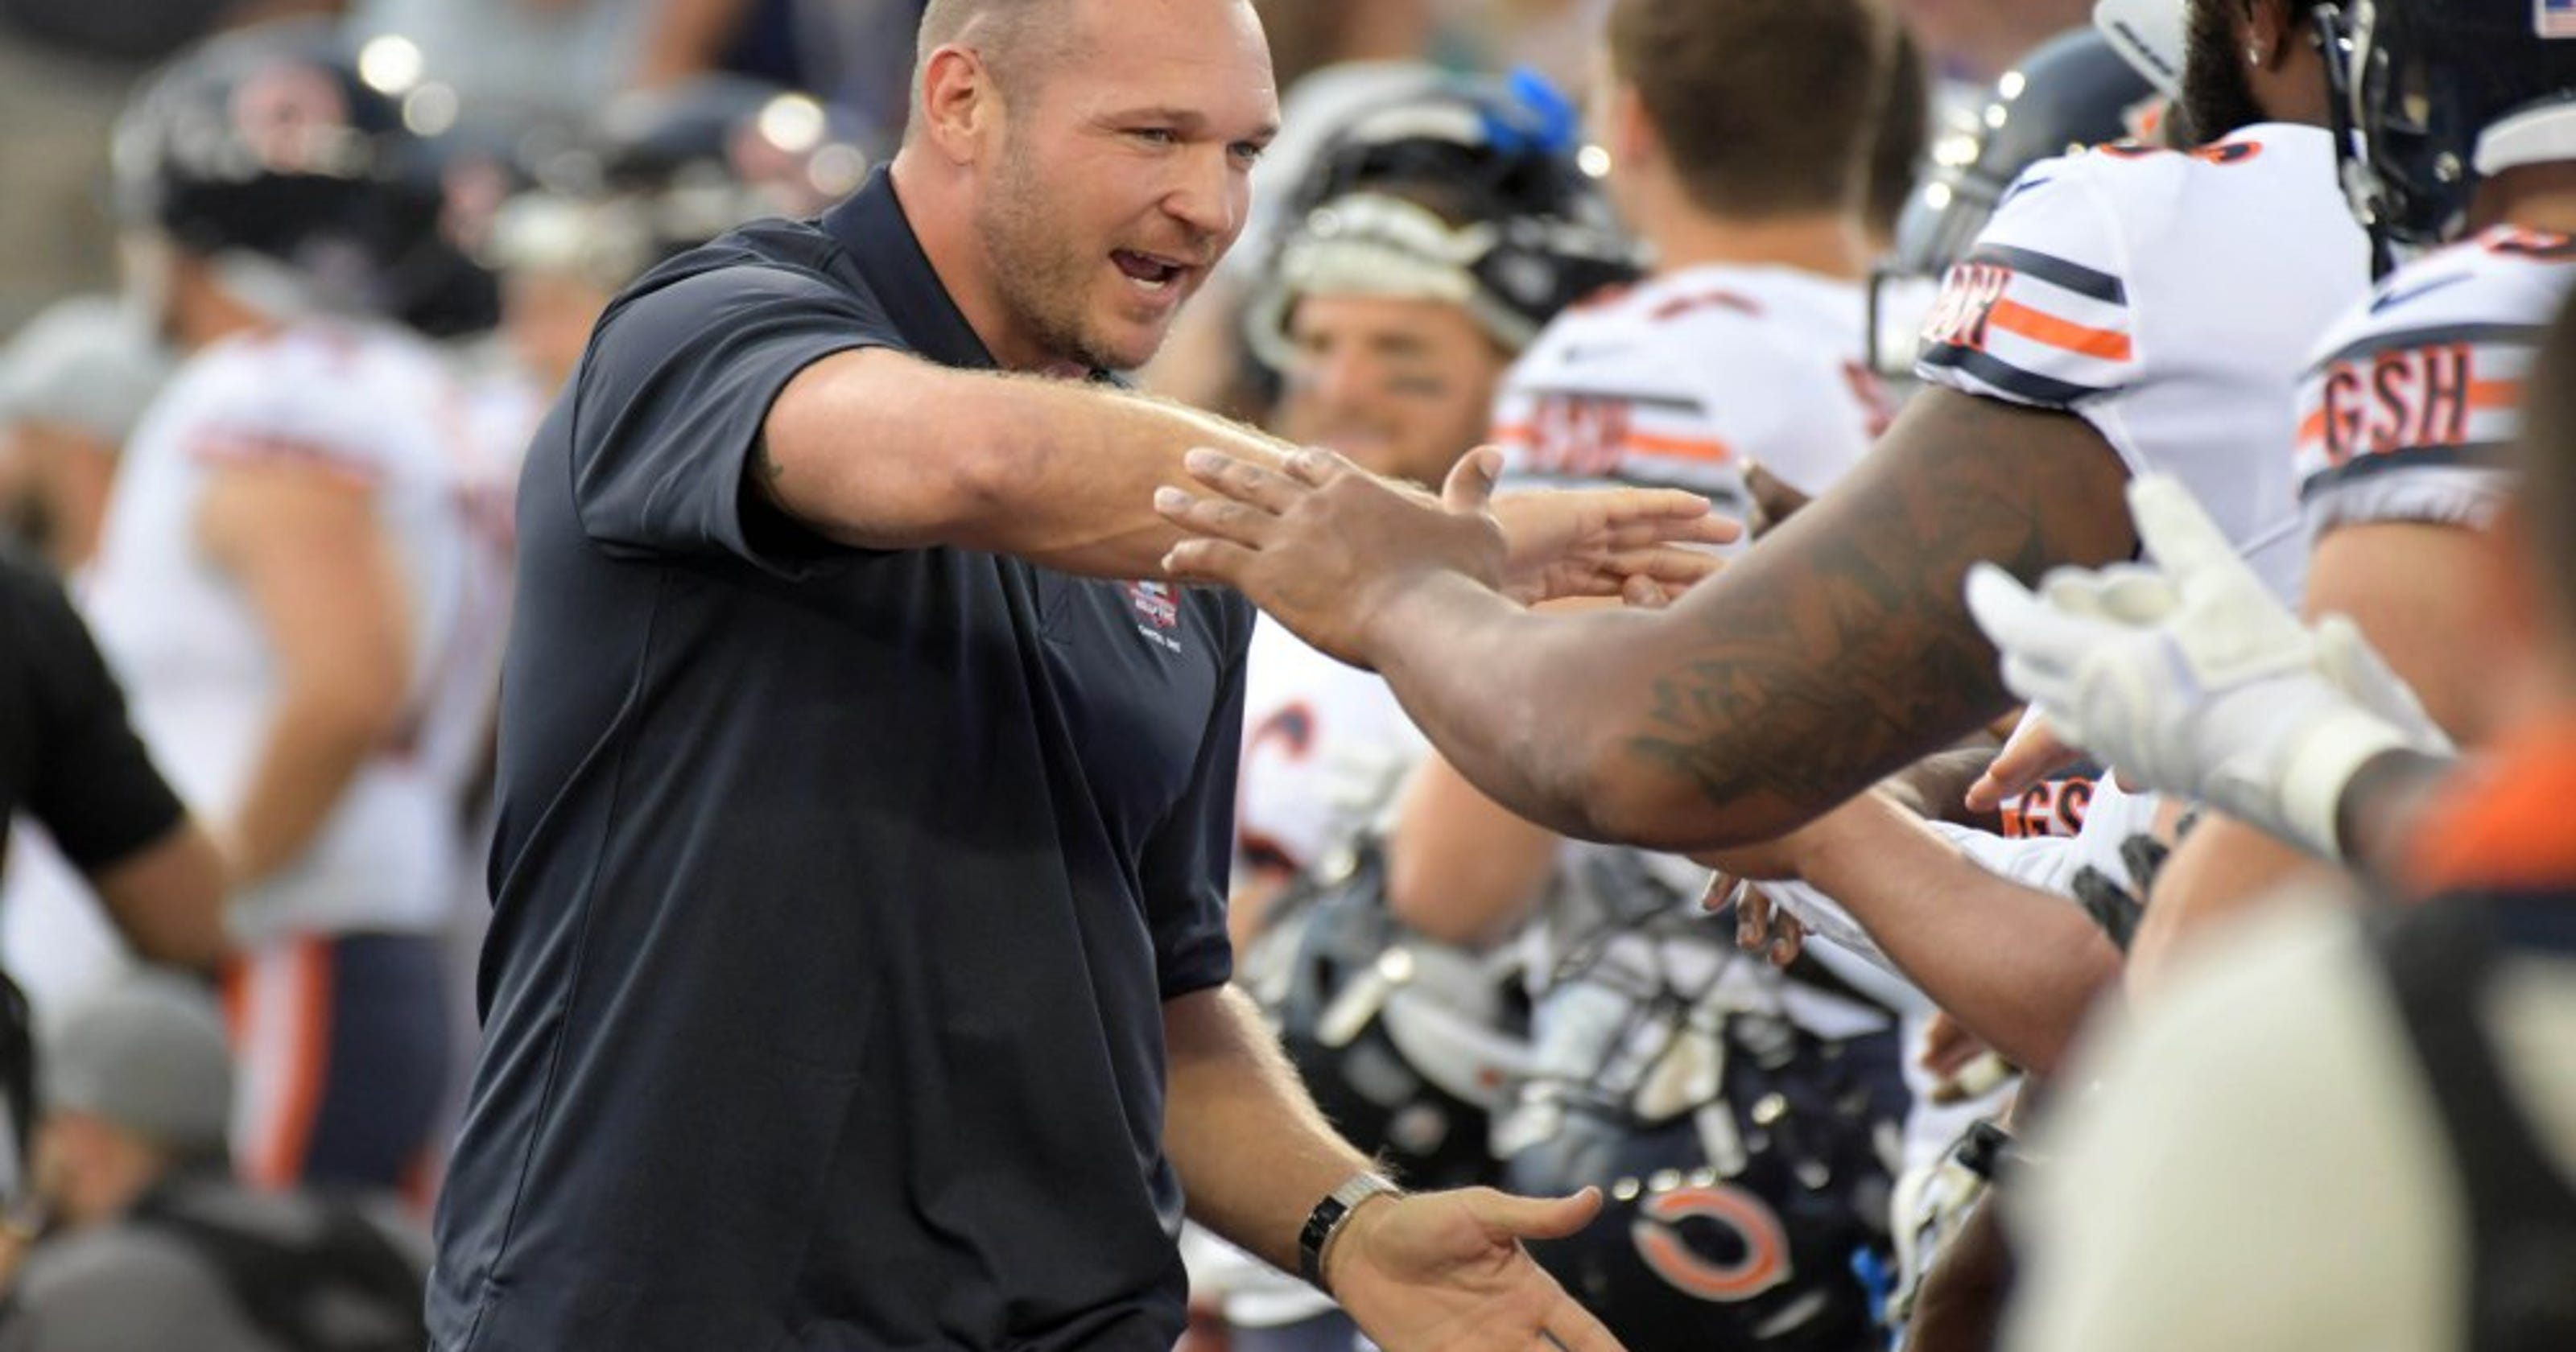 bf6e890ff8d Energy Summit: Urlacher will make an appearance at Carlsbad Energy Summit